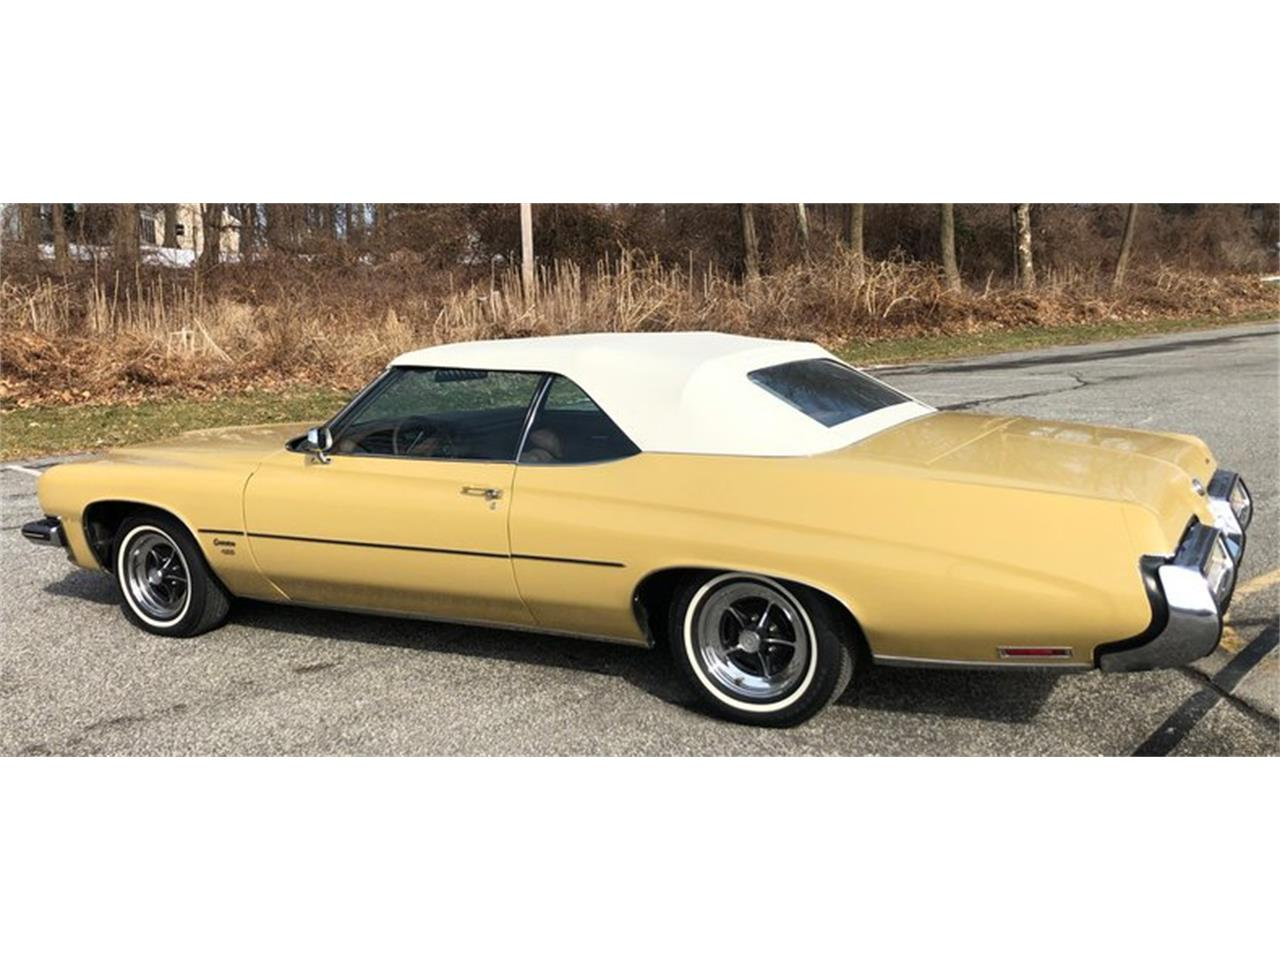 Large Picture of 1973 Buick Centurion - $21,500.00 - PBP7